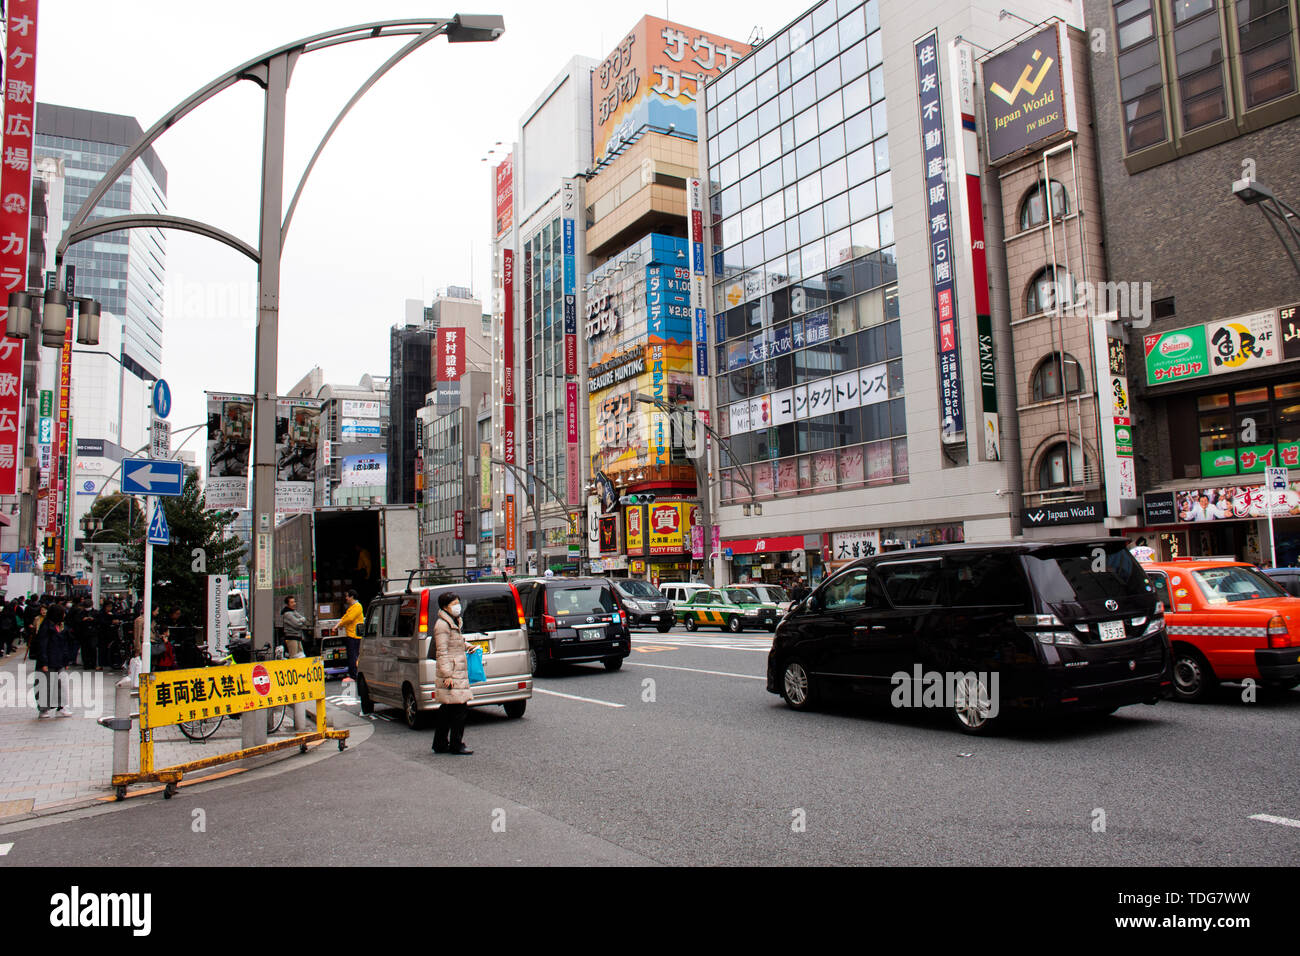 Japanese people and foreigner traveler walk visit and shopping beside road with traffic road of chuo dori street at Ueno city on March 30, 2019 in Tok - Stock Image